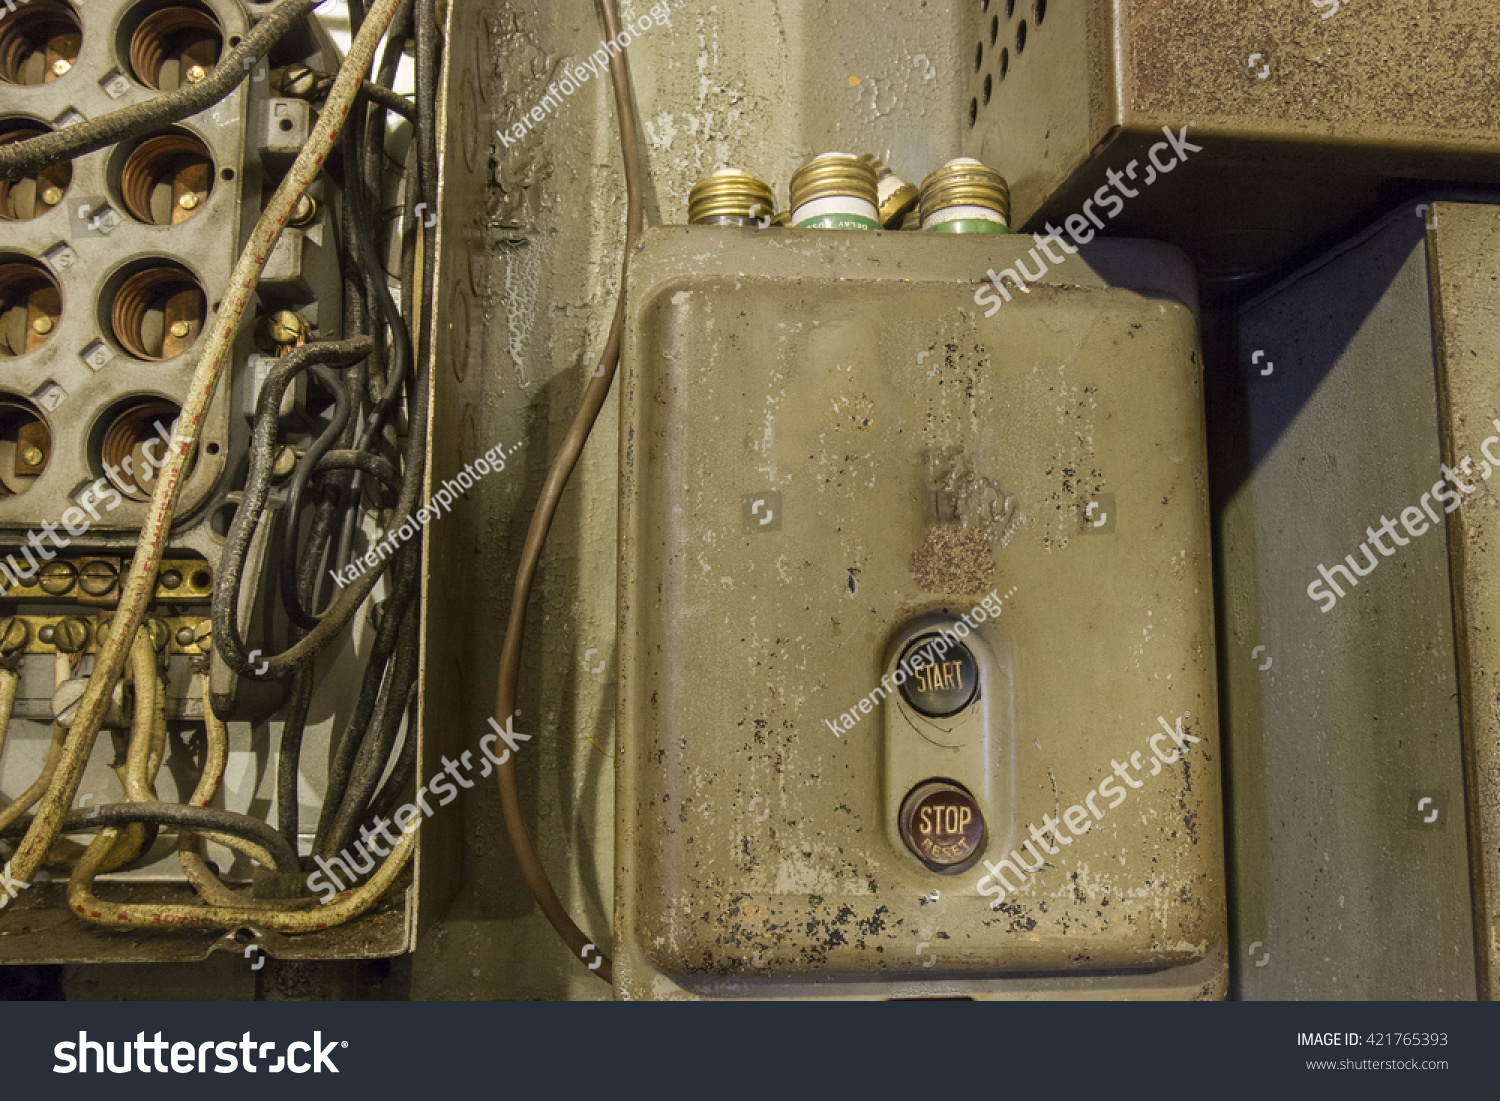 vintage fuse box fuses on top stock photo edit now 421765393 rh shutterstock com vintage car fuse box vintage fuse box cover